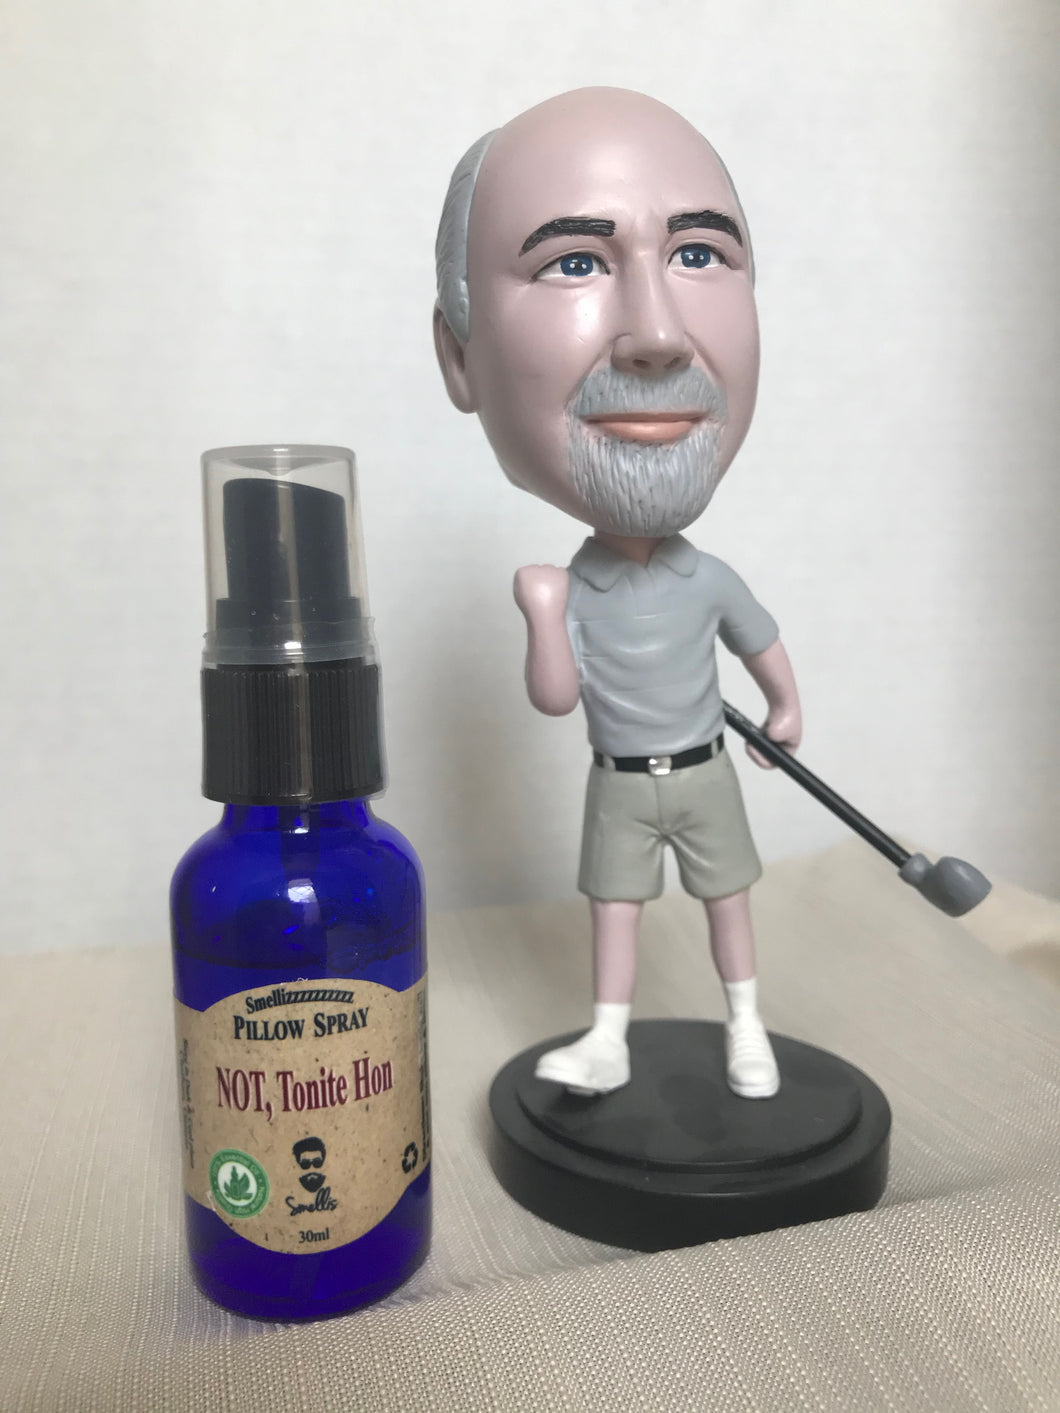 Pillow Mist - NOT Tonite, Hon - Smellis Beard Care Products